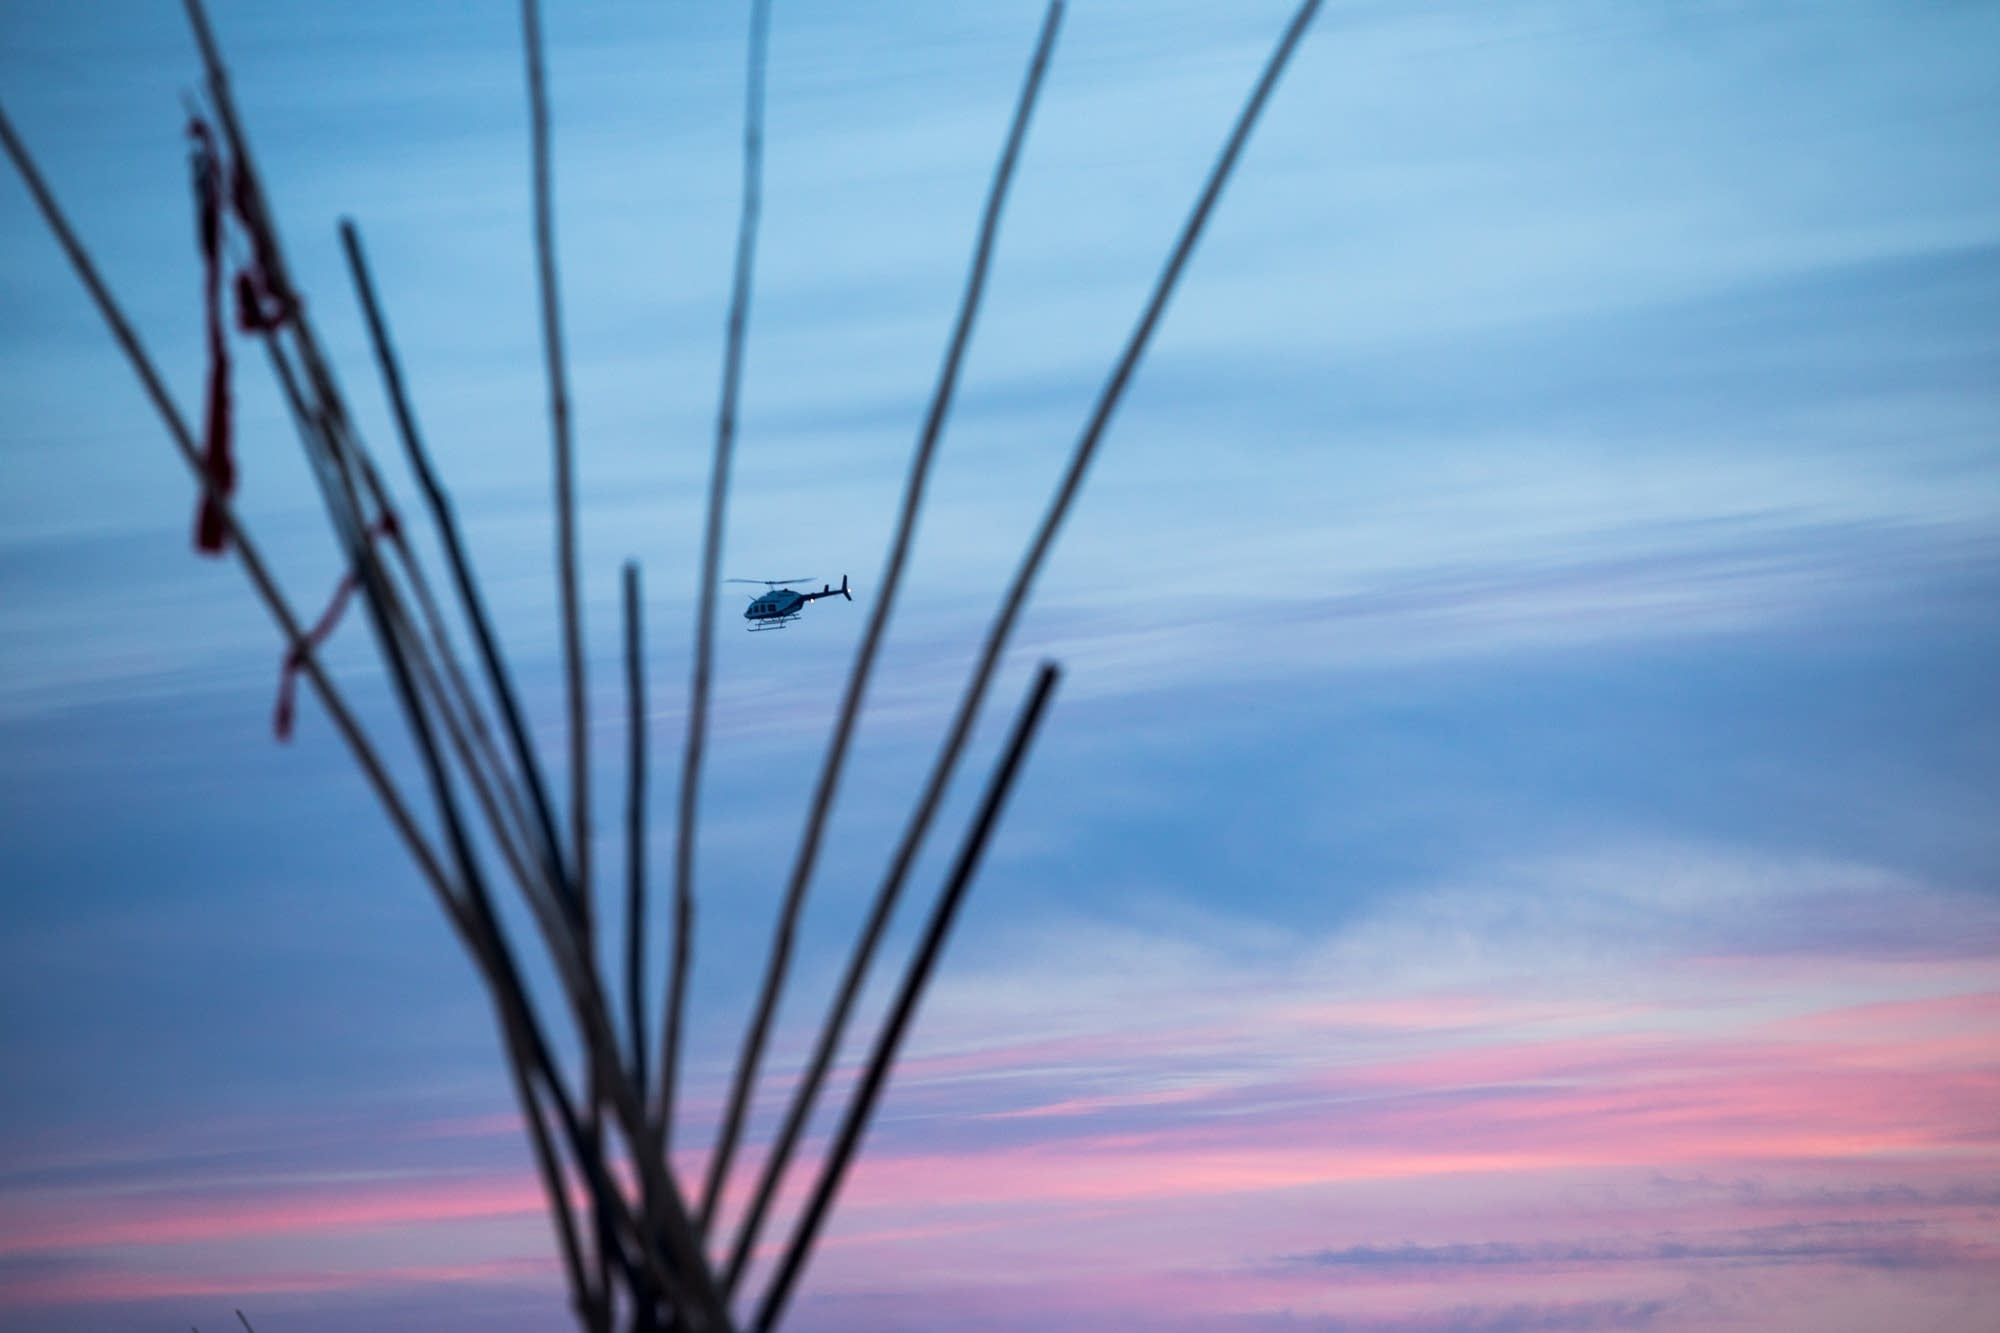 A surveillance helicopter flies over camp.